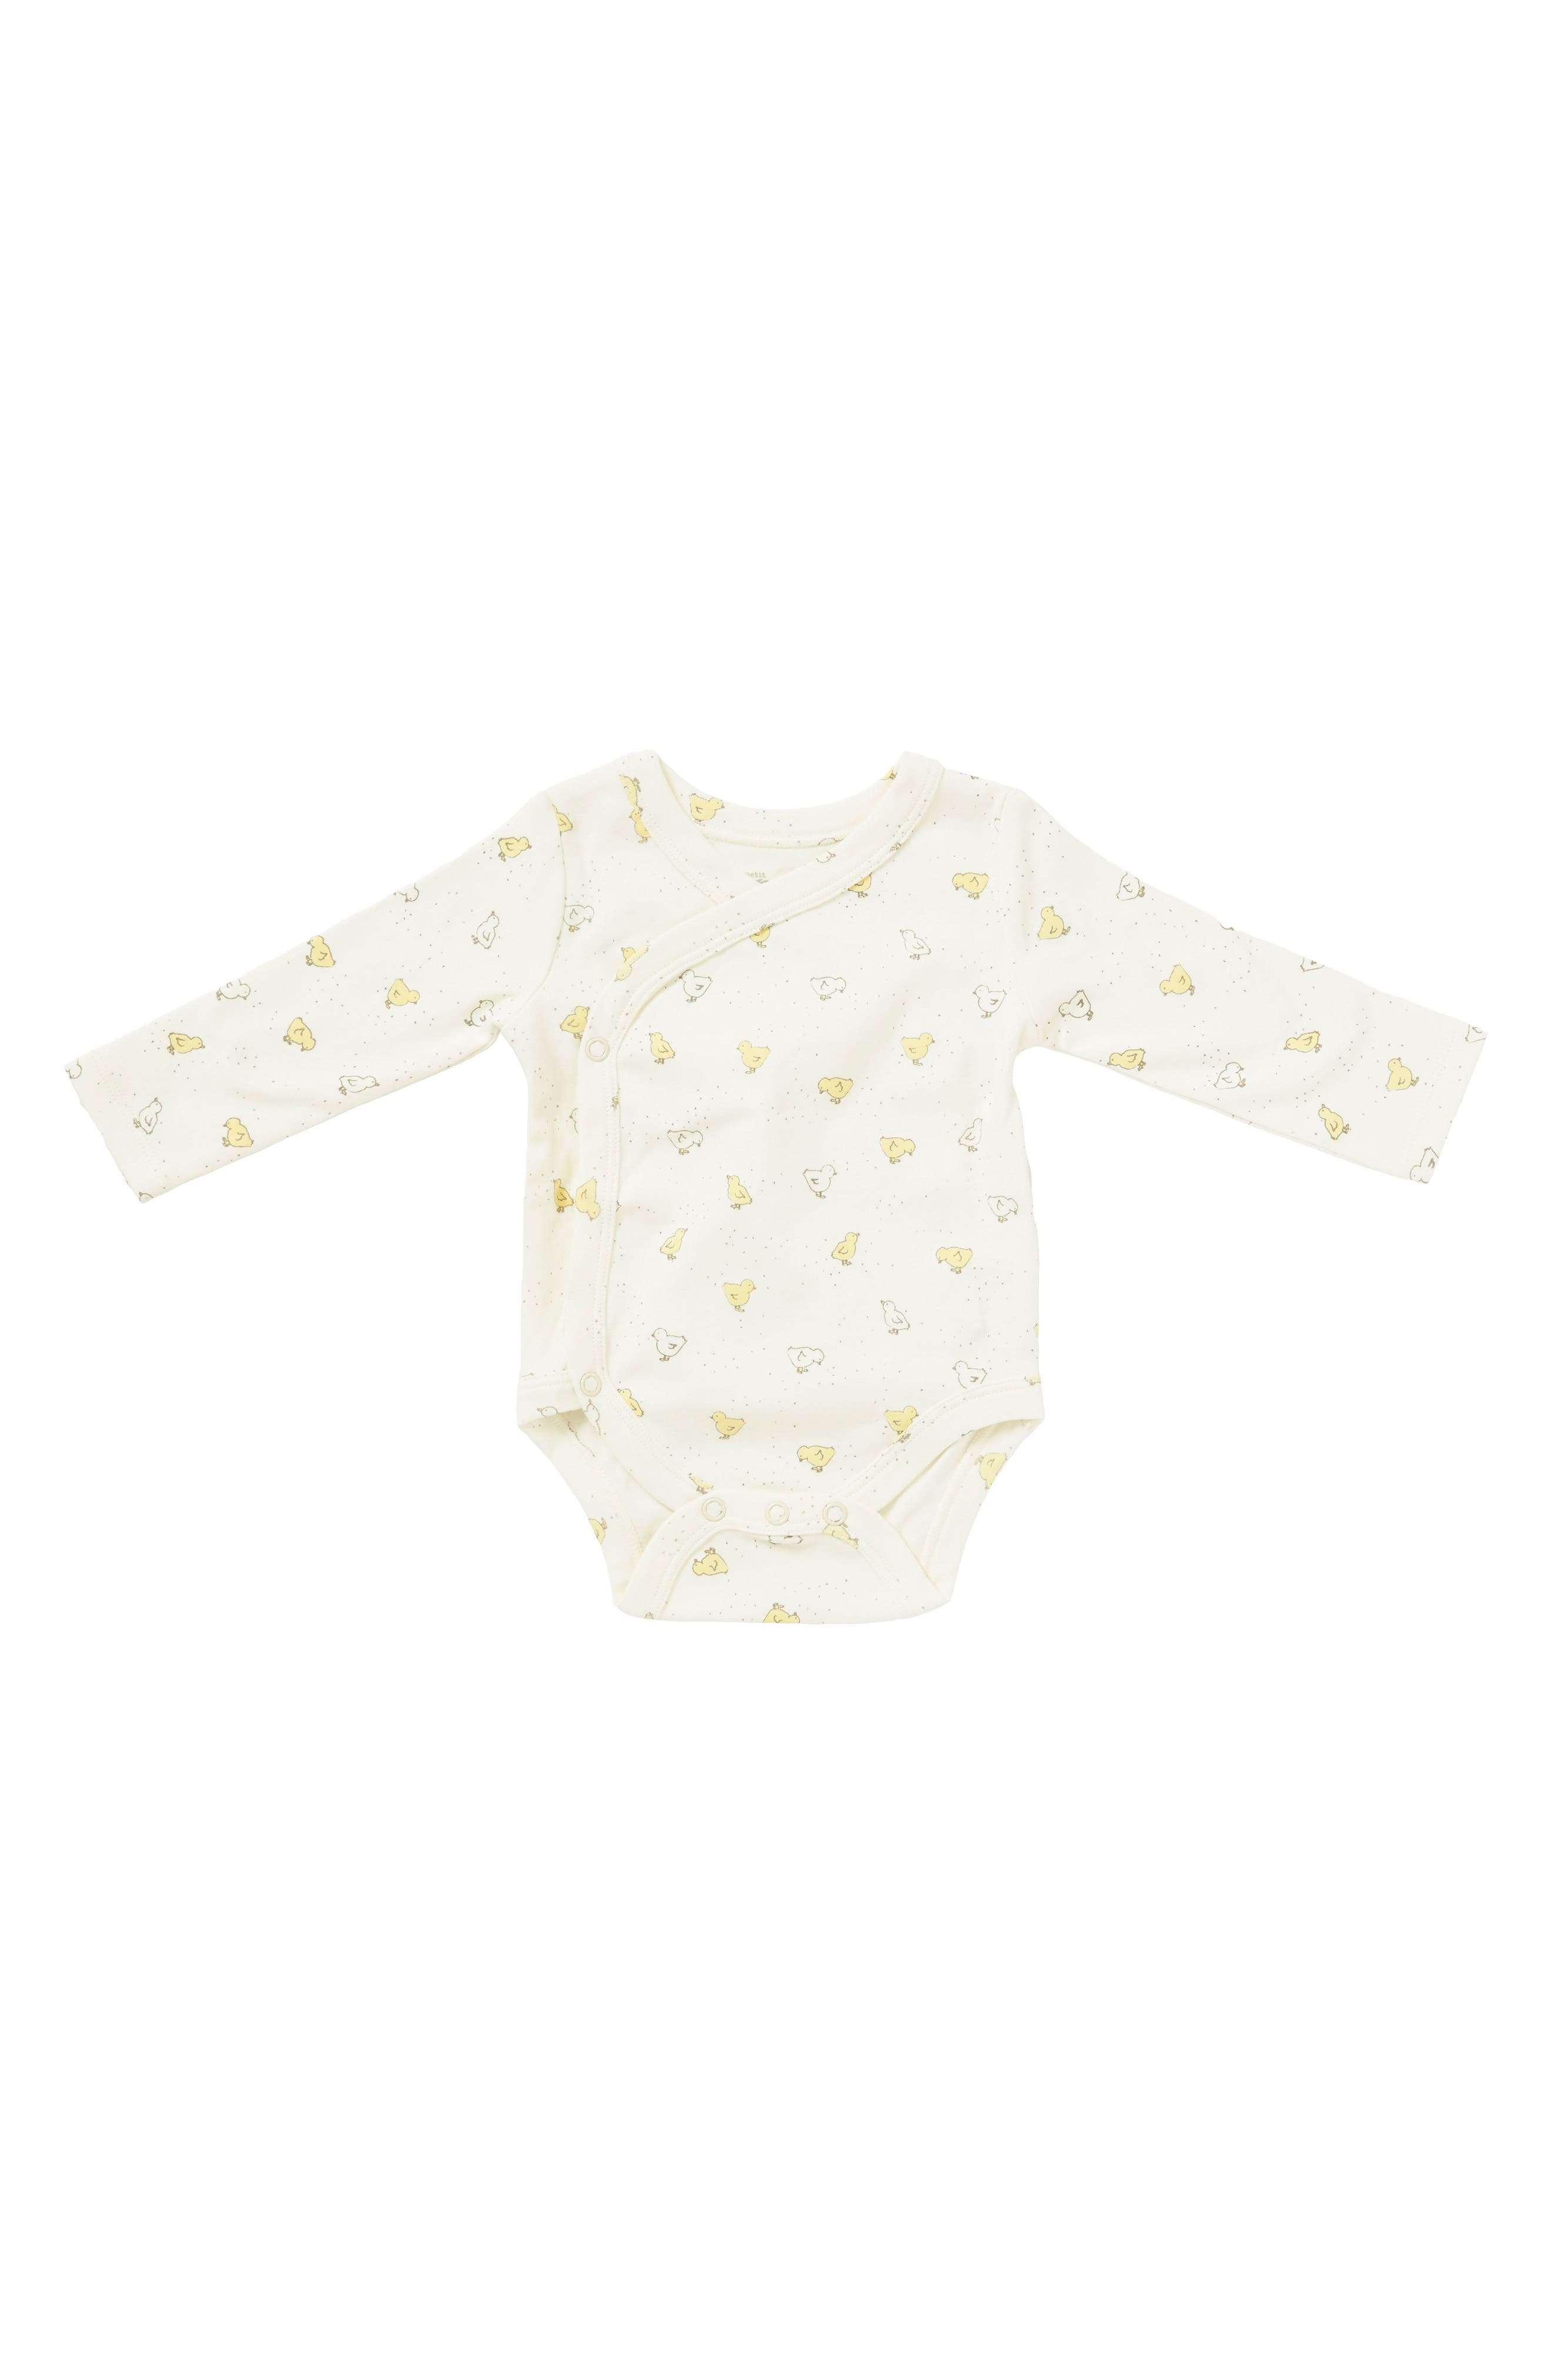 Baby Chick Bodysuit,                         Main,                         color, Ivory